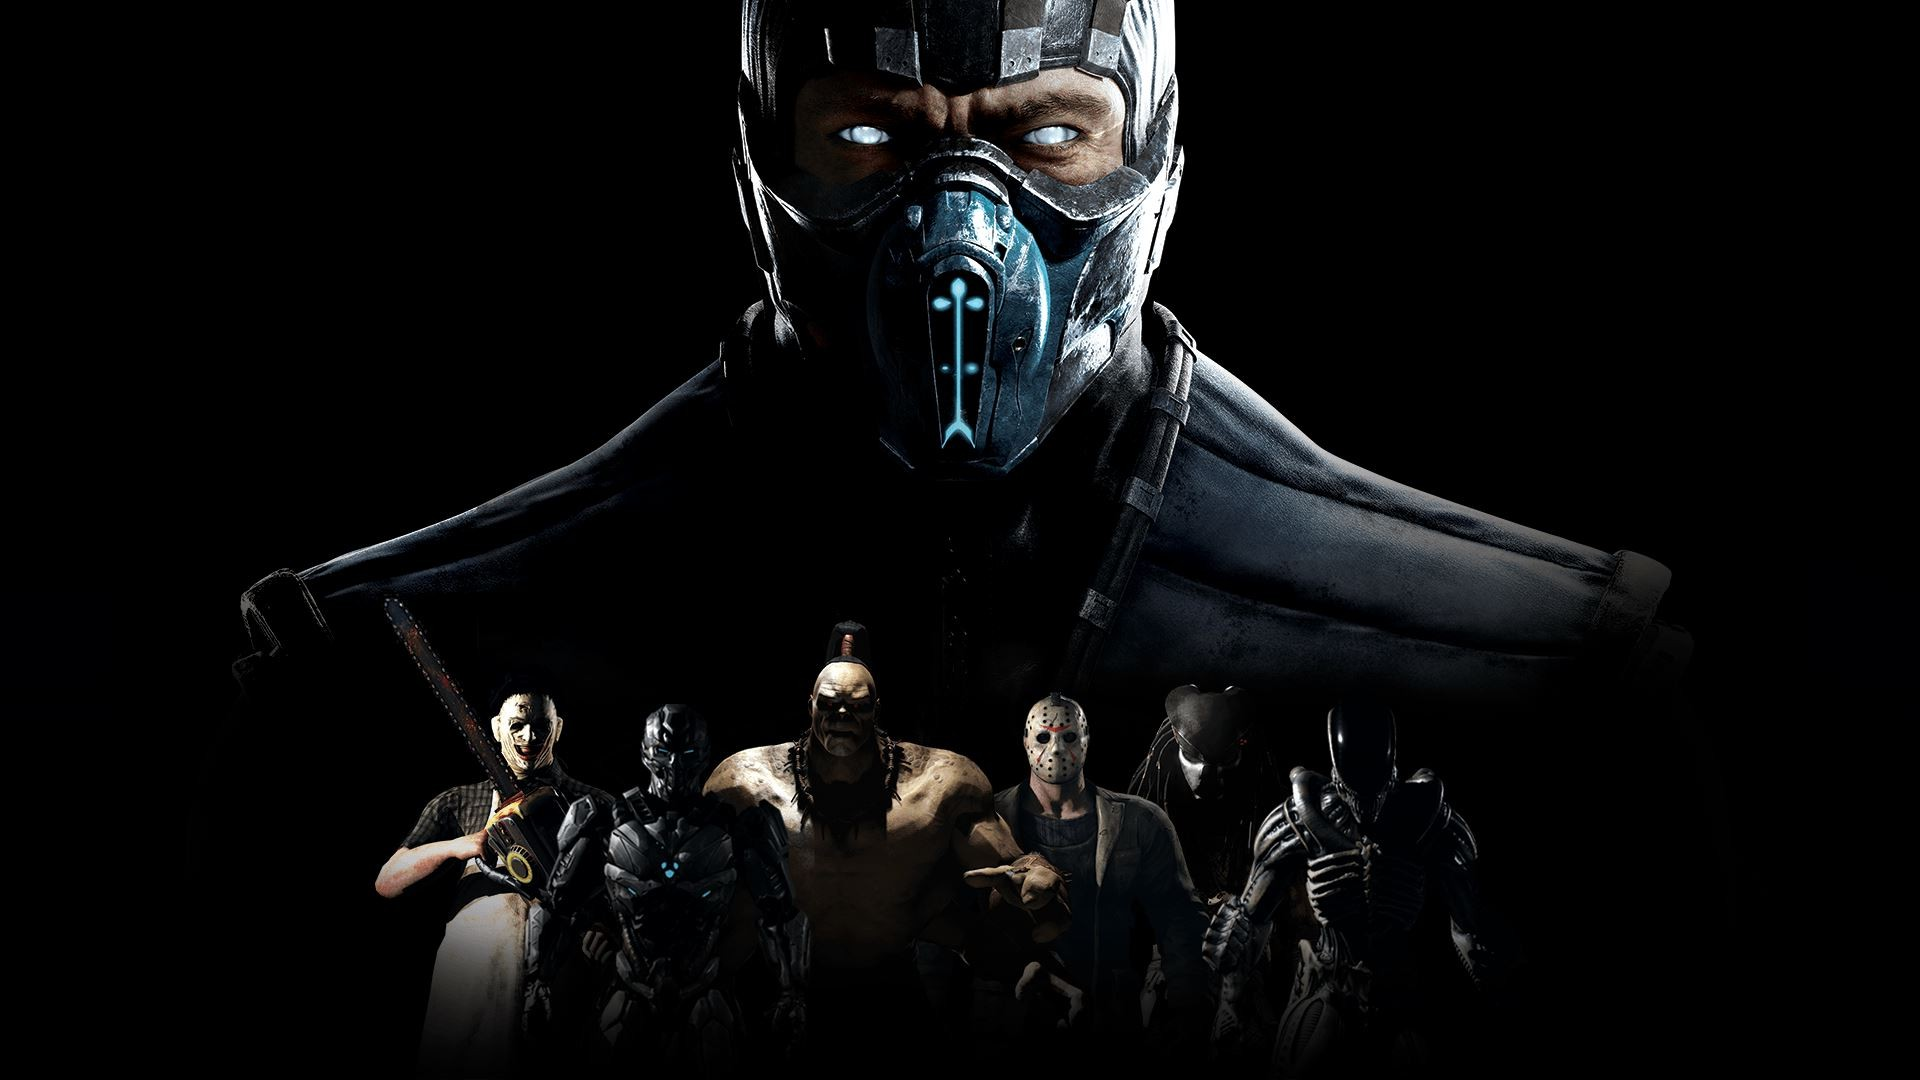 1366x768 Mortal Kombat X Xl Edition 1366x768 Resolution Hd 4k